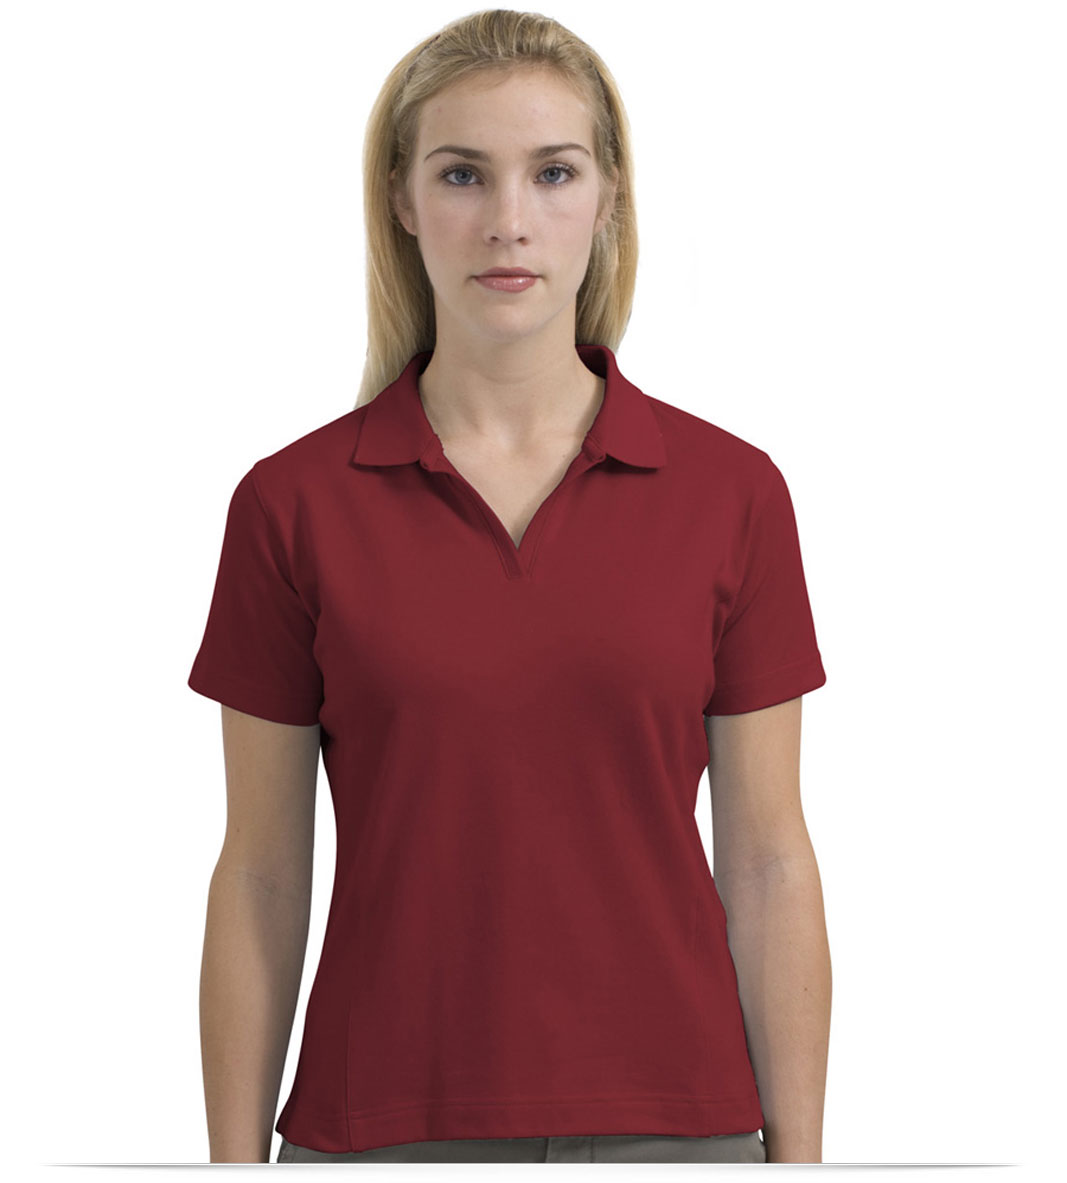 Design embroidered women 39 s nike golf shirt online at for Women s dri fit golf shirts